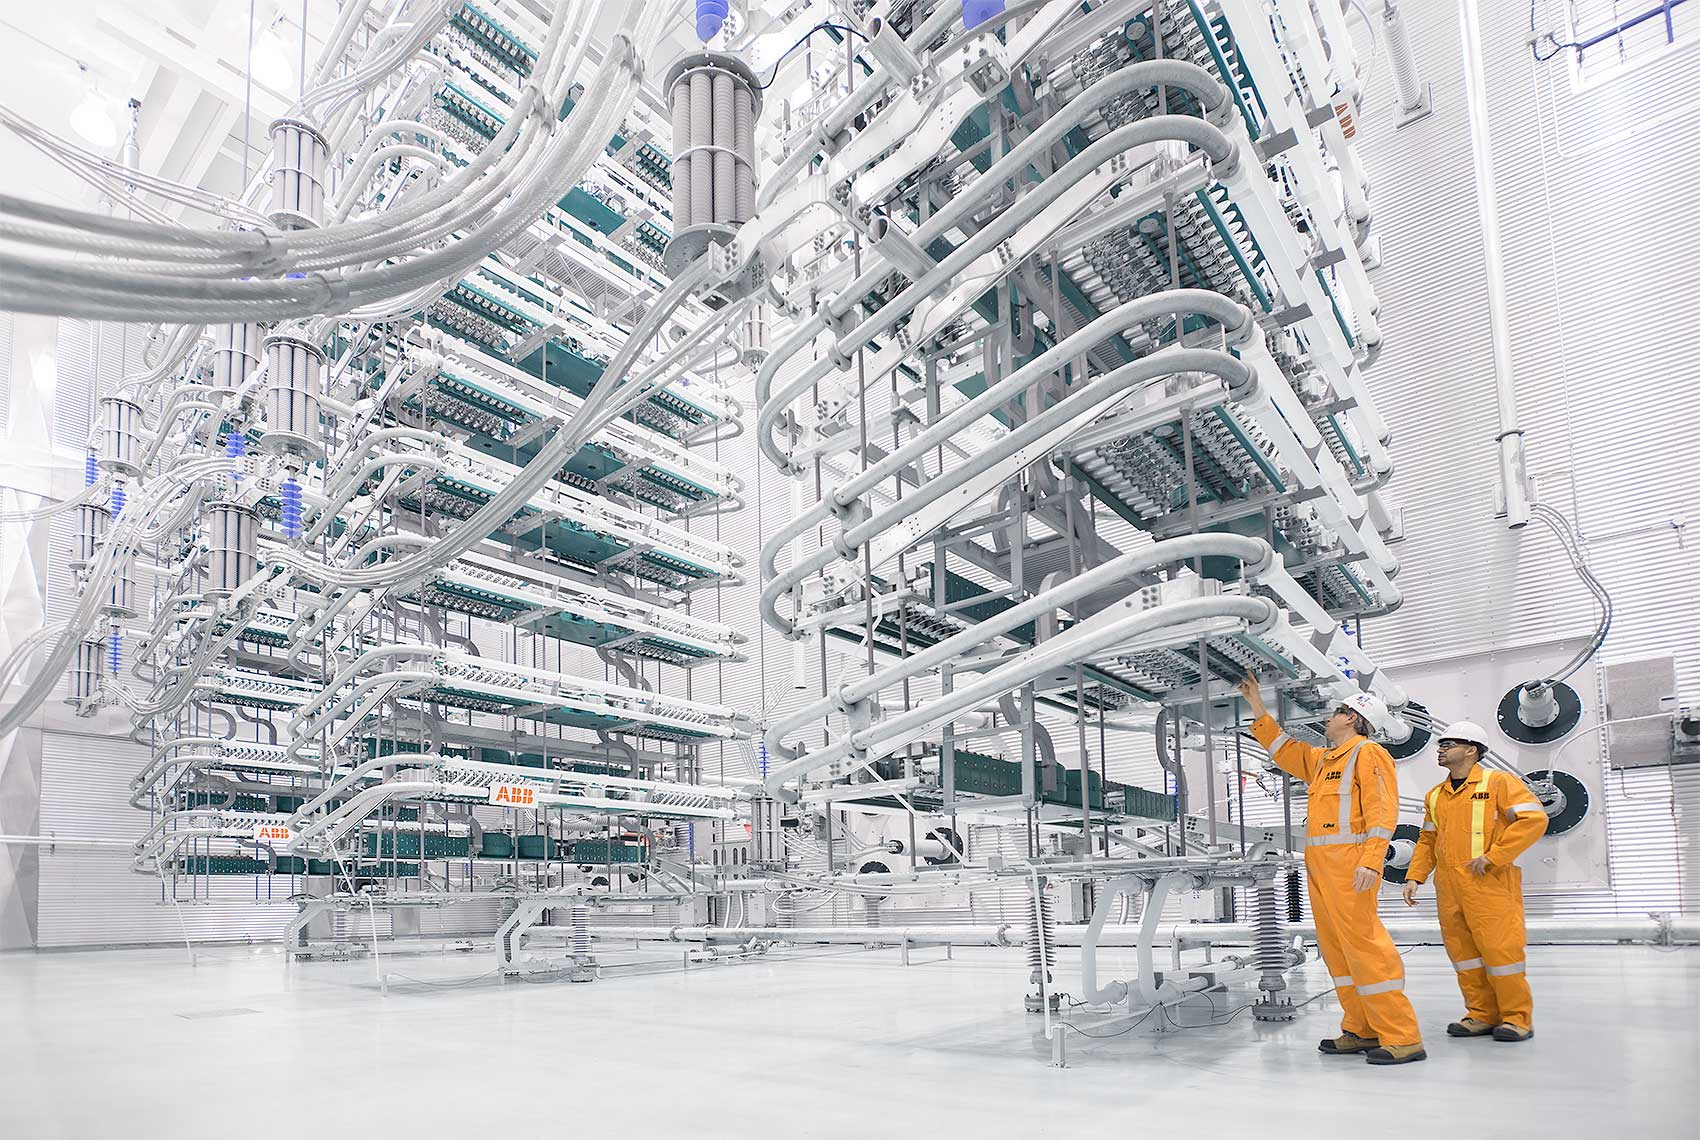 Abb Hvdc 2 Architectural Industrial Photographer